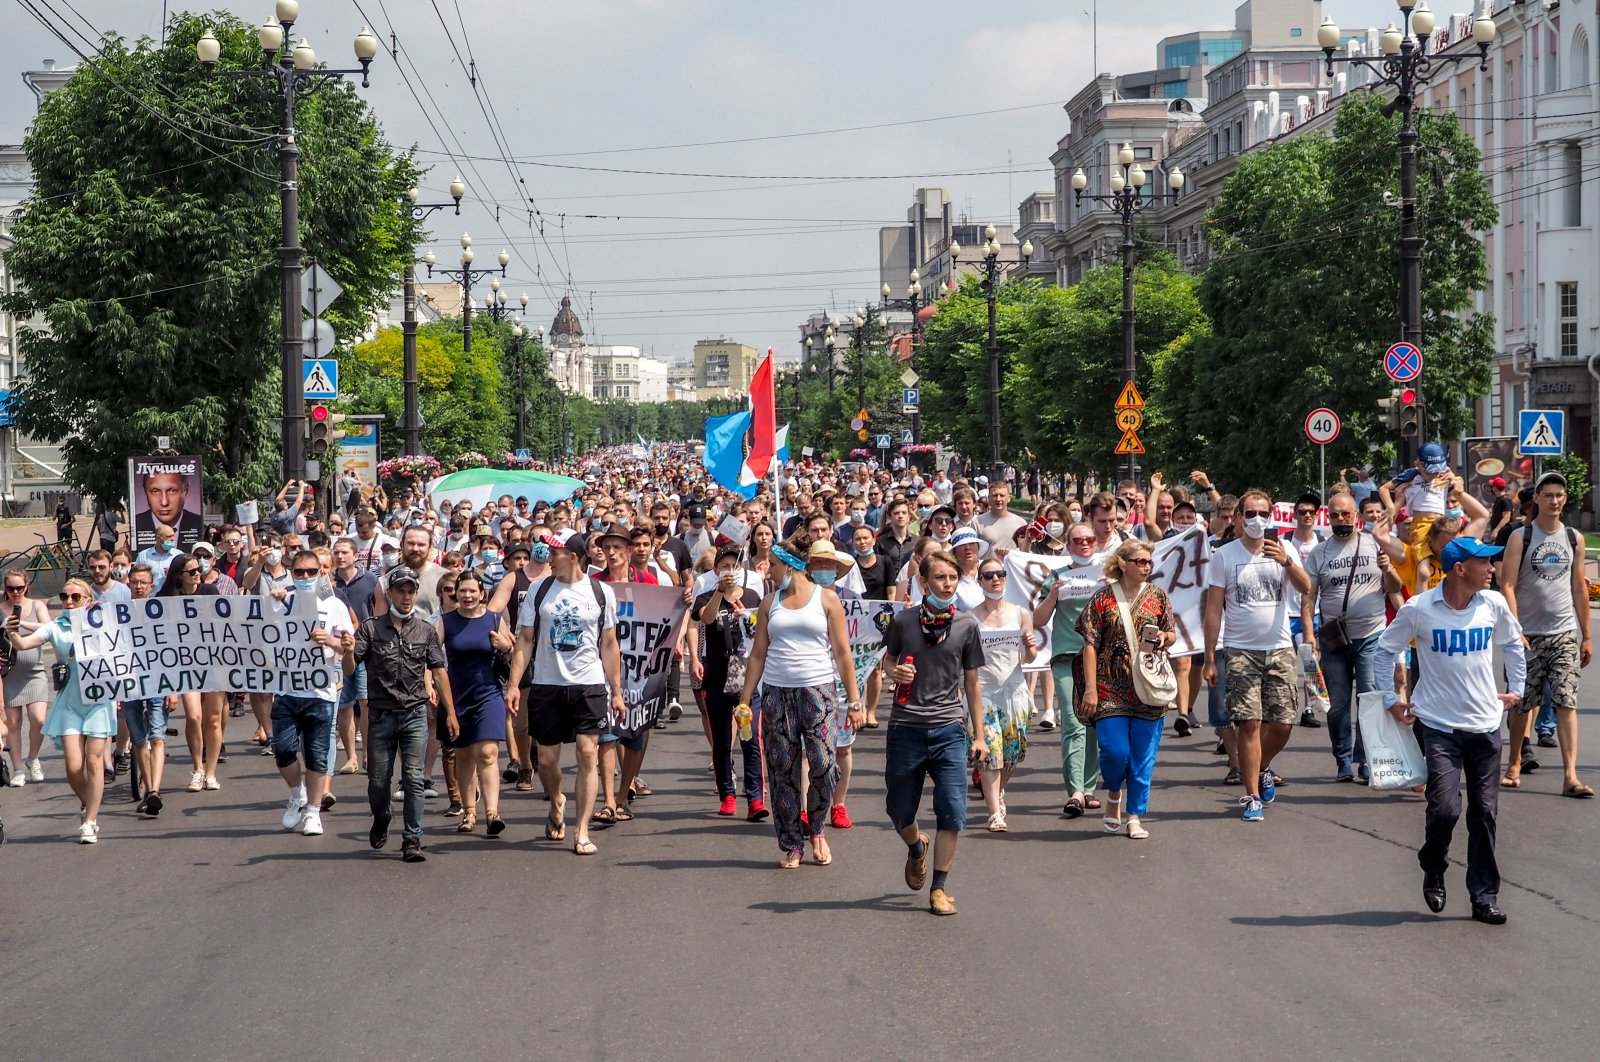 """People hold posters that read: """"Freedom for Khabarovsk region's governor Sergei Furgal"""" during an unsanctioned protest in support of Sergei Furgal, the governor of the Khabarovsk region, in Khabarovsk, 6100 kilometers (3800 miles) east of Moscow, Russia, Saturday, July 18, 2020. (AP Photo)"""